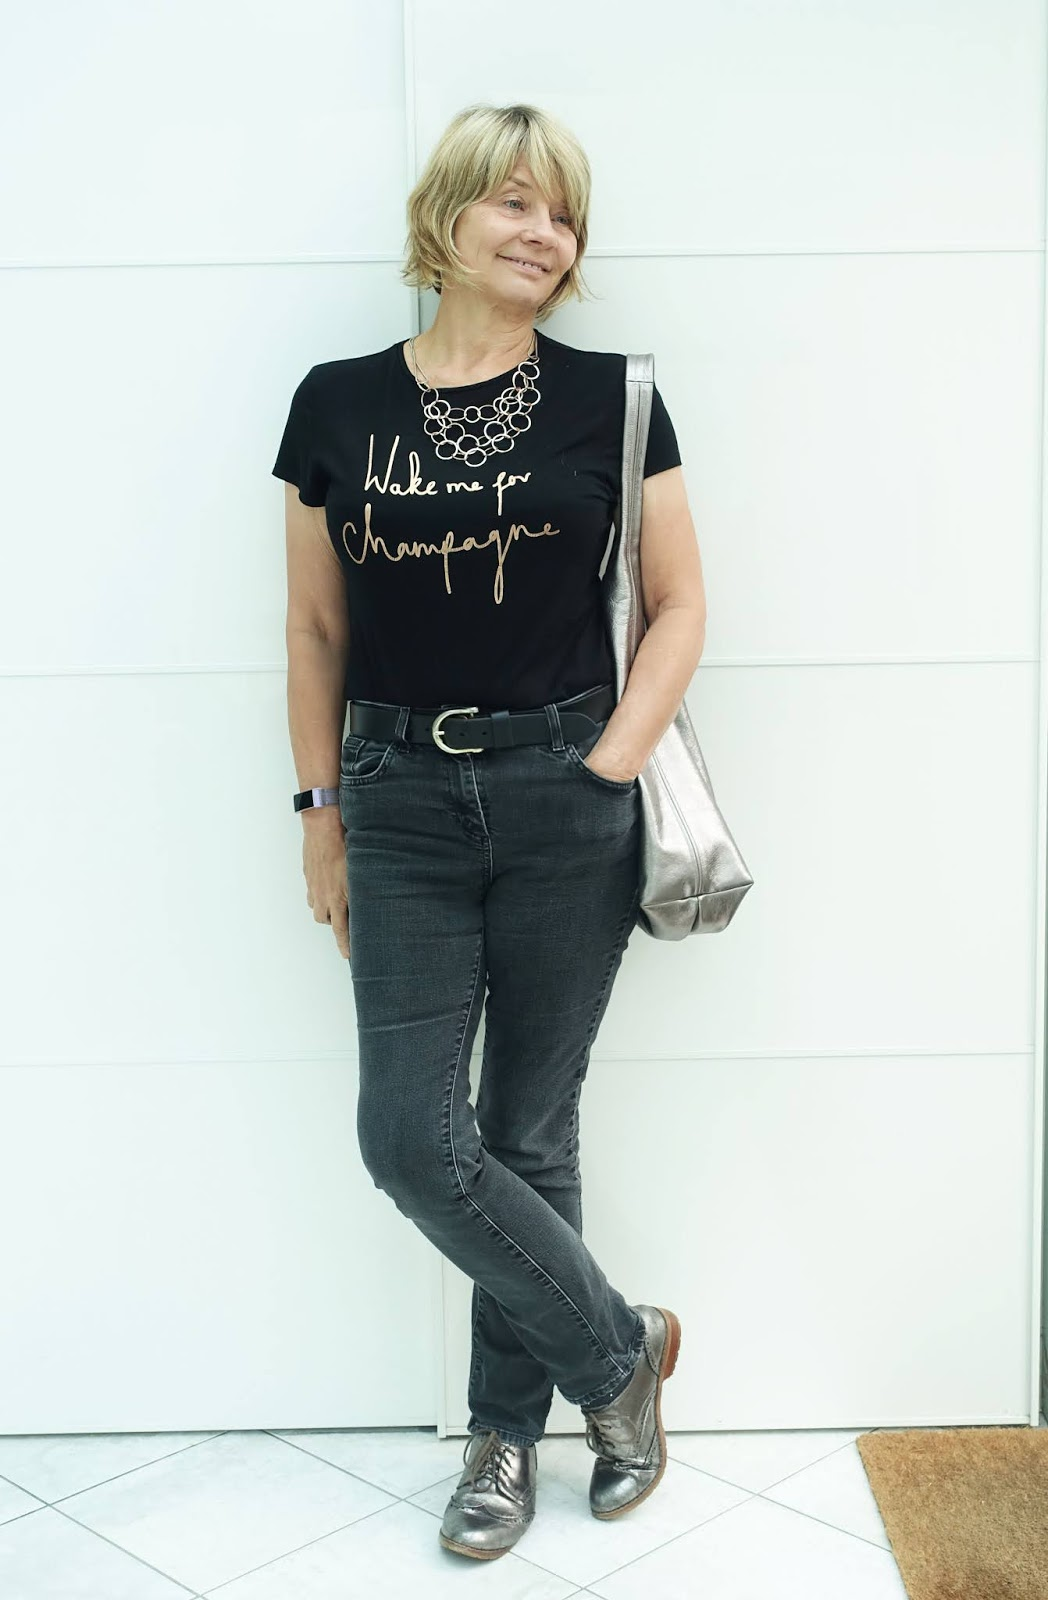 Over 50s woman in black jeans and slogan tee with metallic bag and brogues